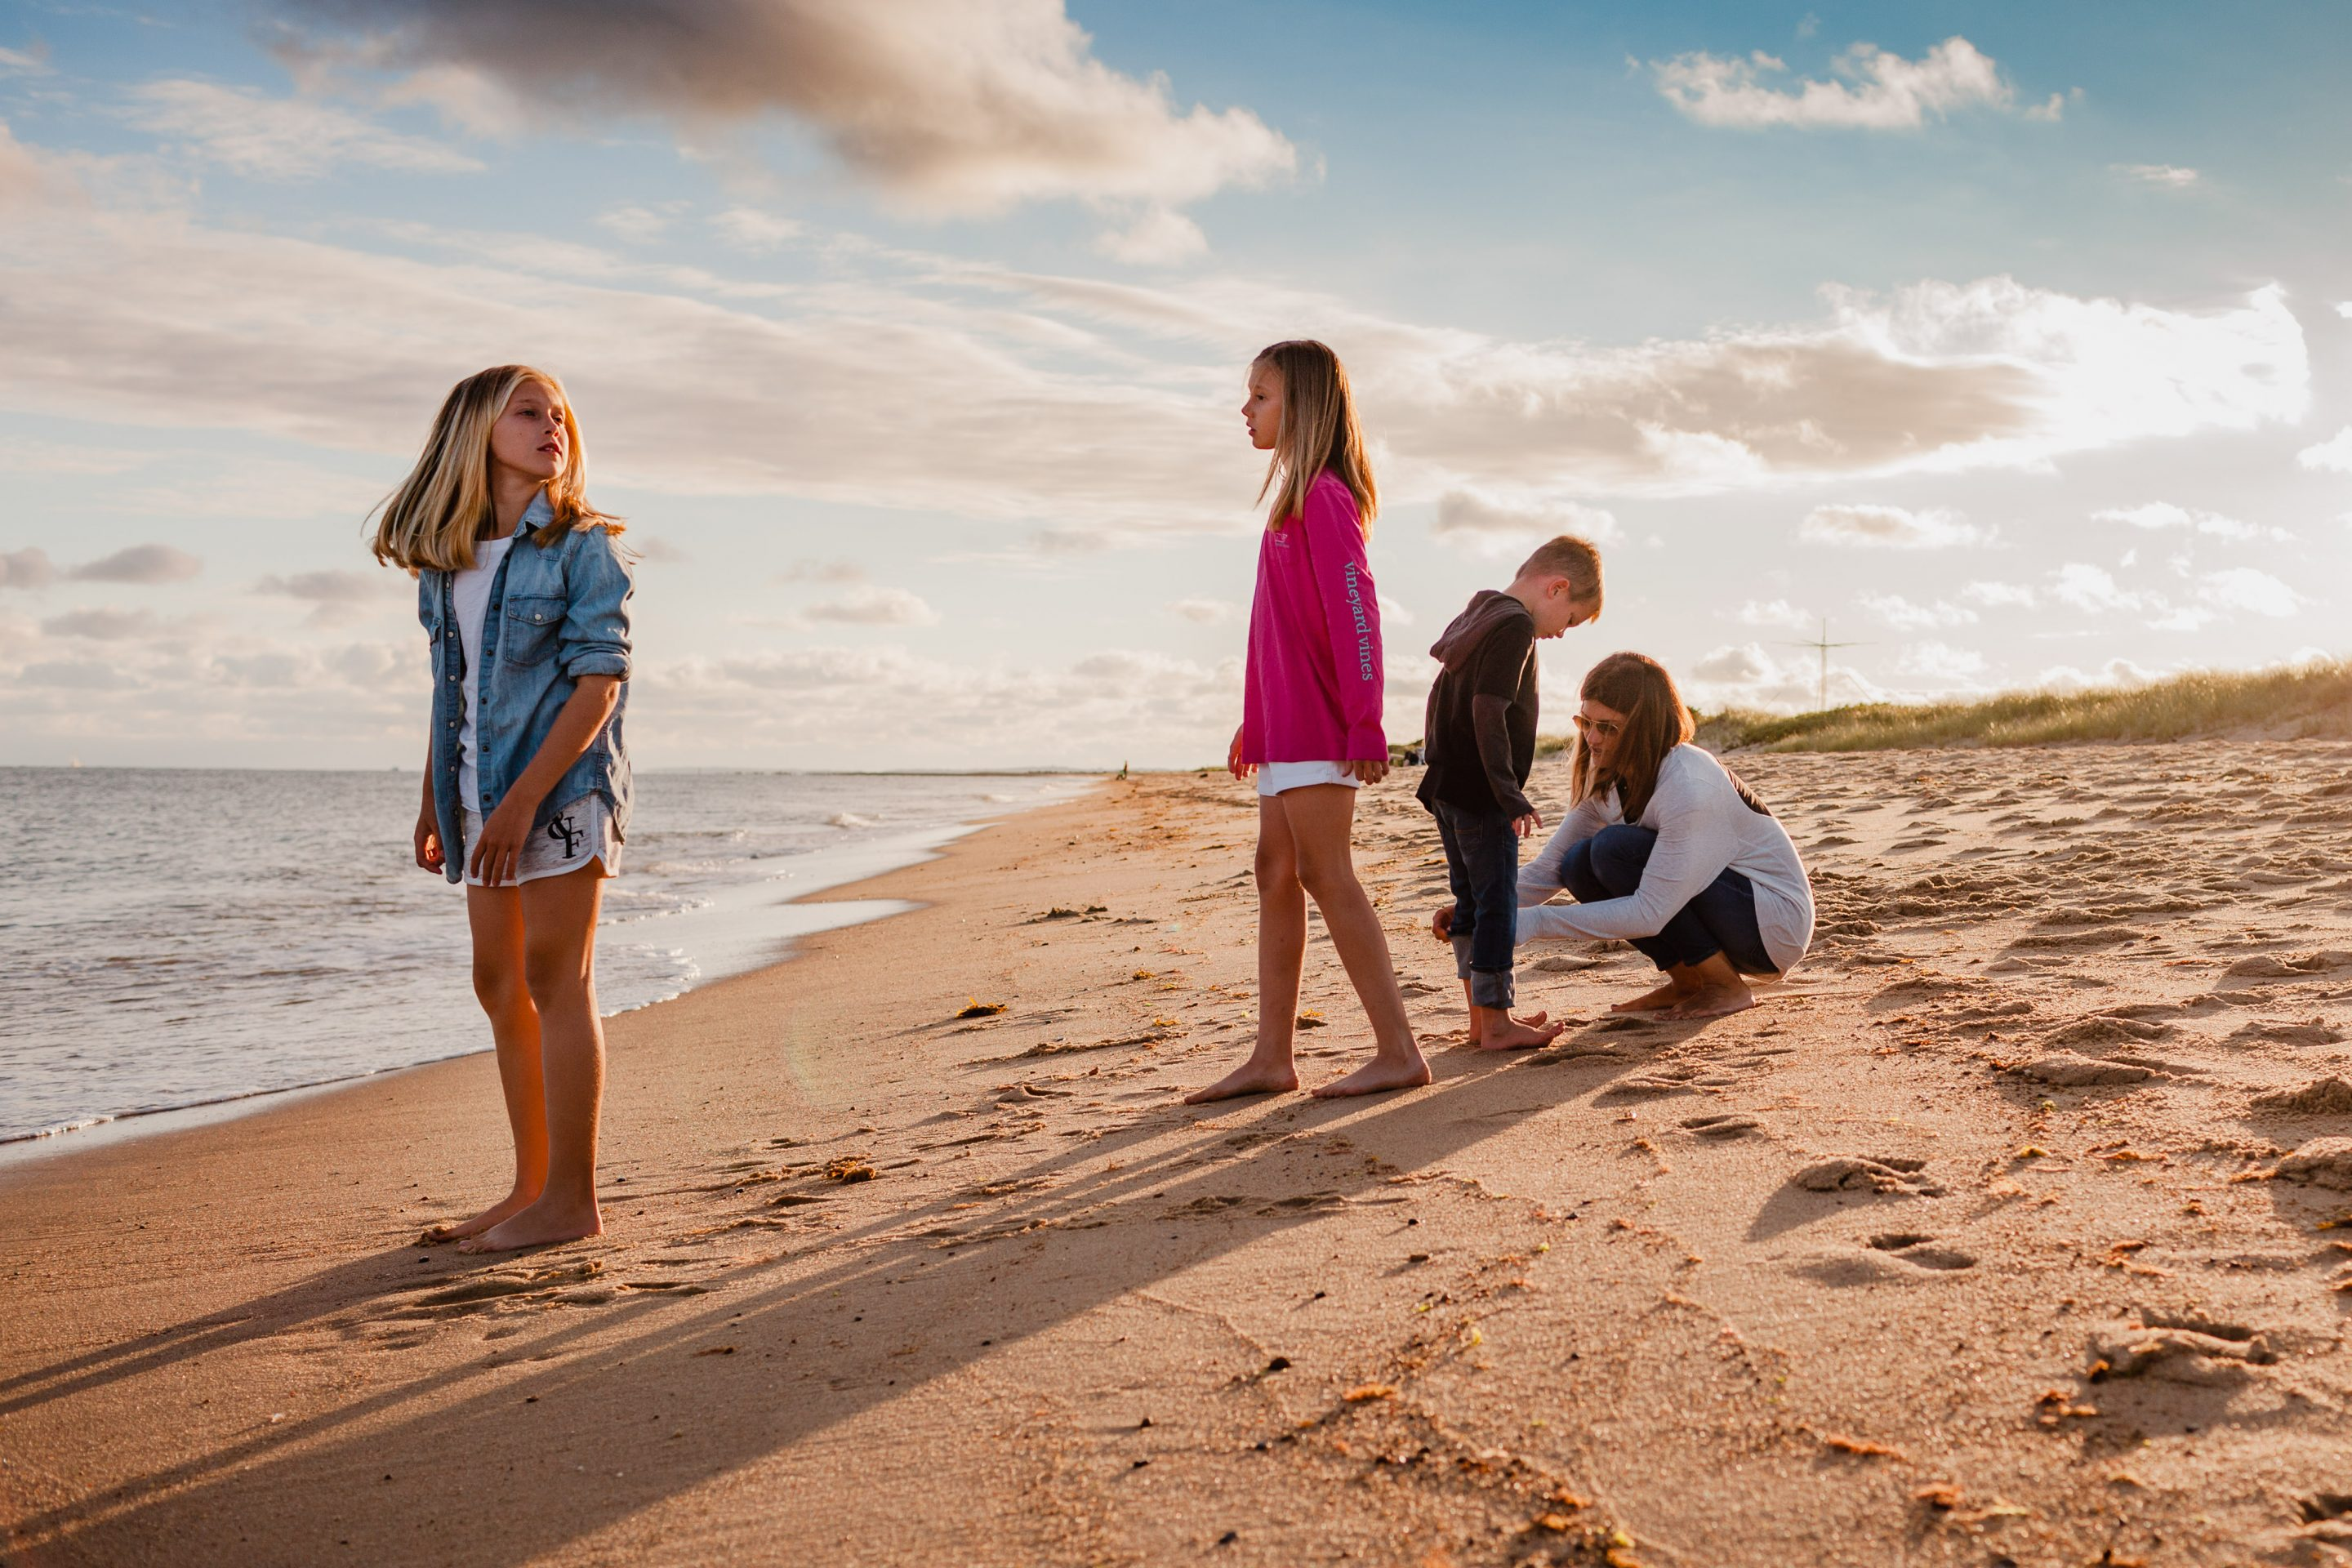 mom tying son's shoe at beach while daughters stand by ocean